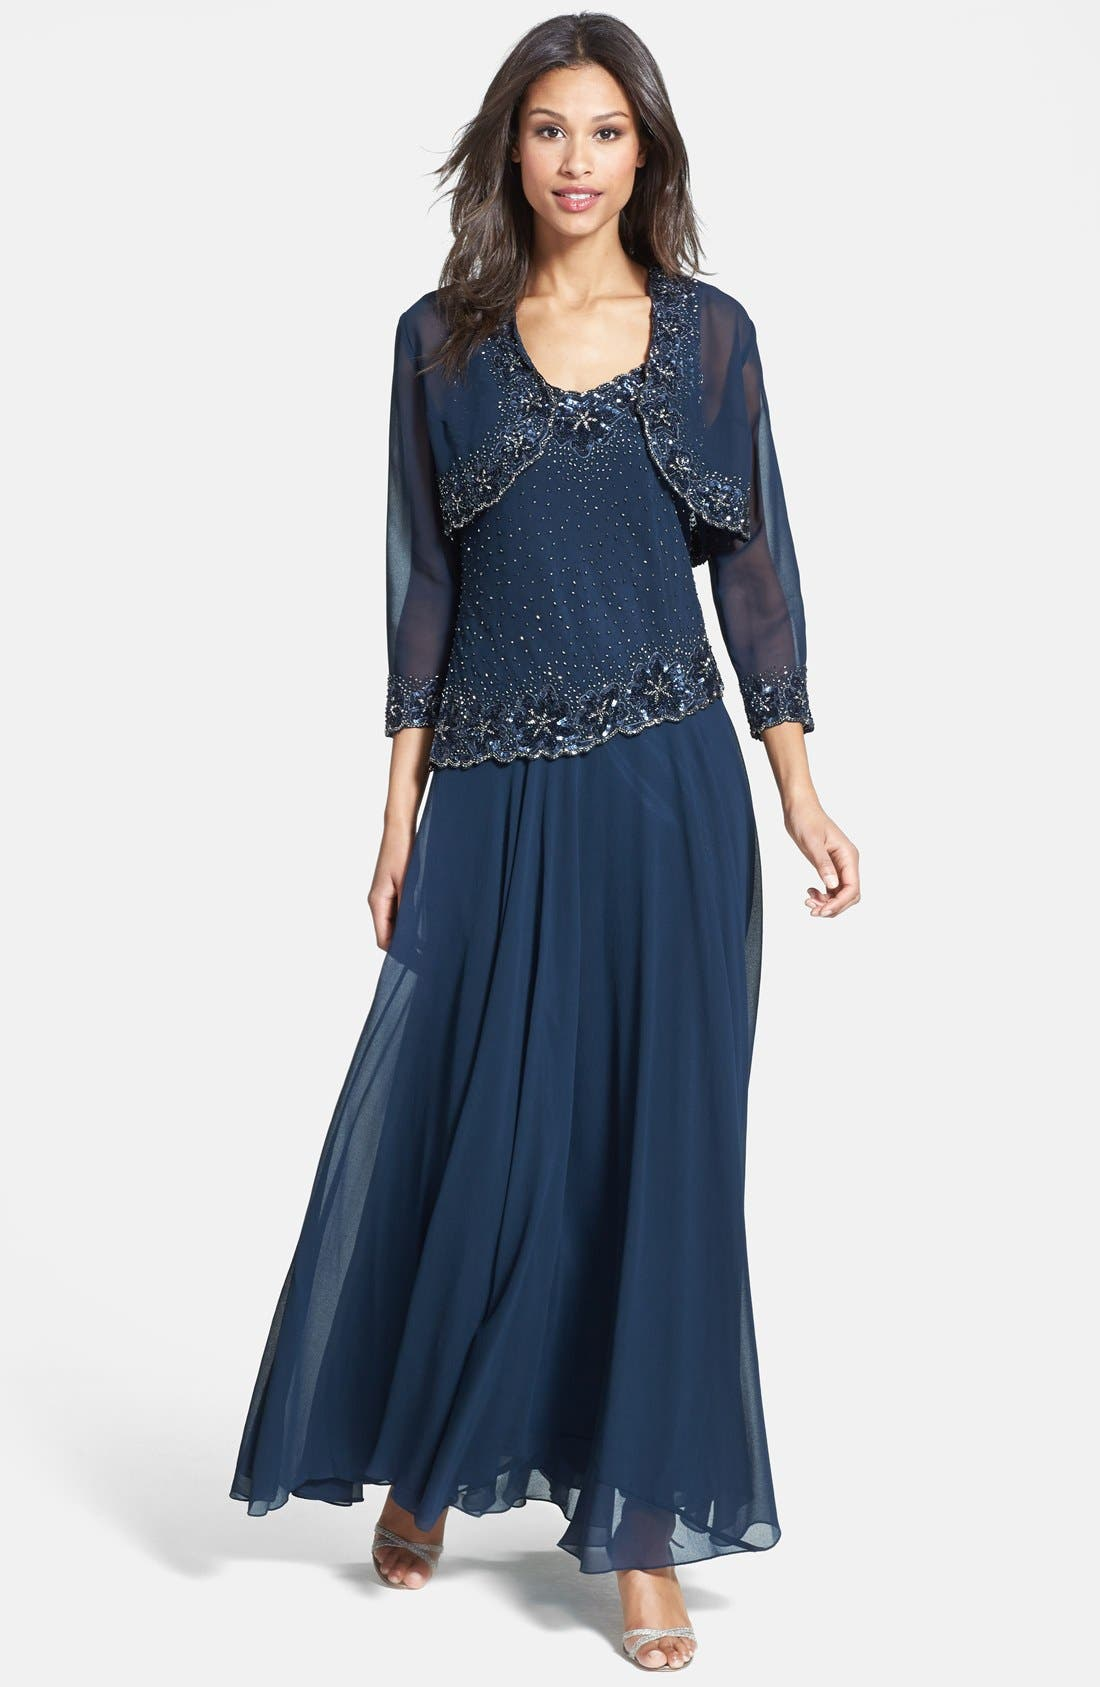 Main Image - J Kara Embellished Chiffon Dress & Bolero